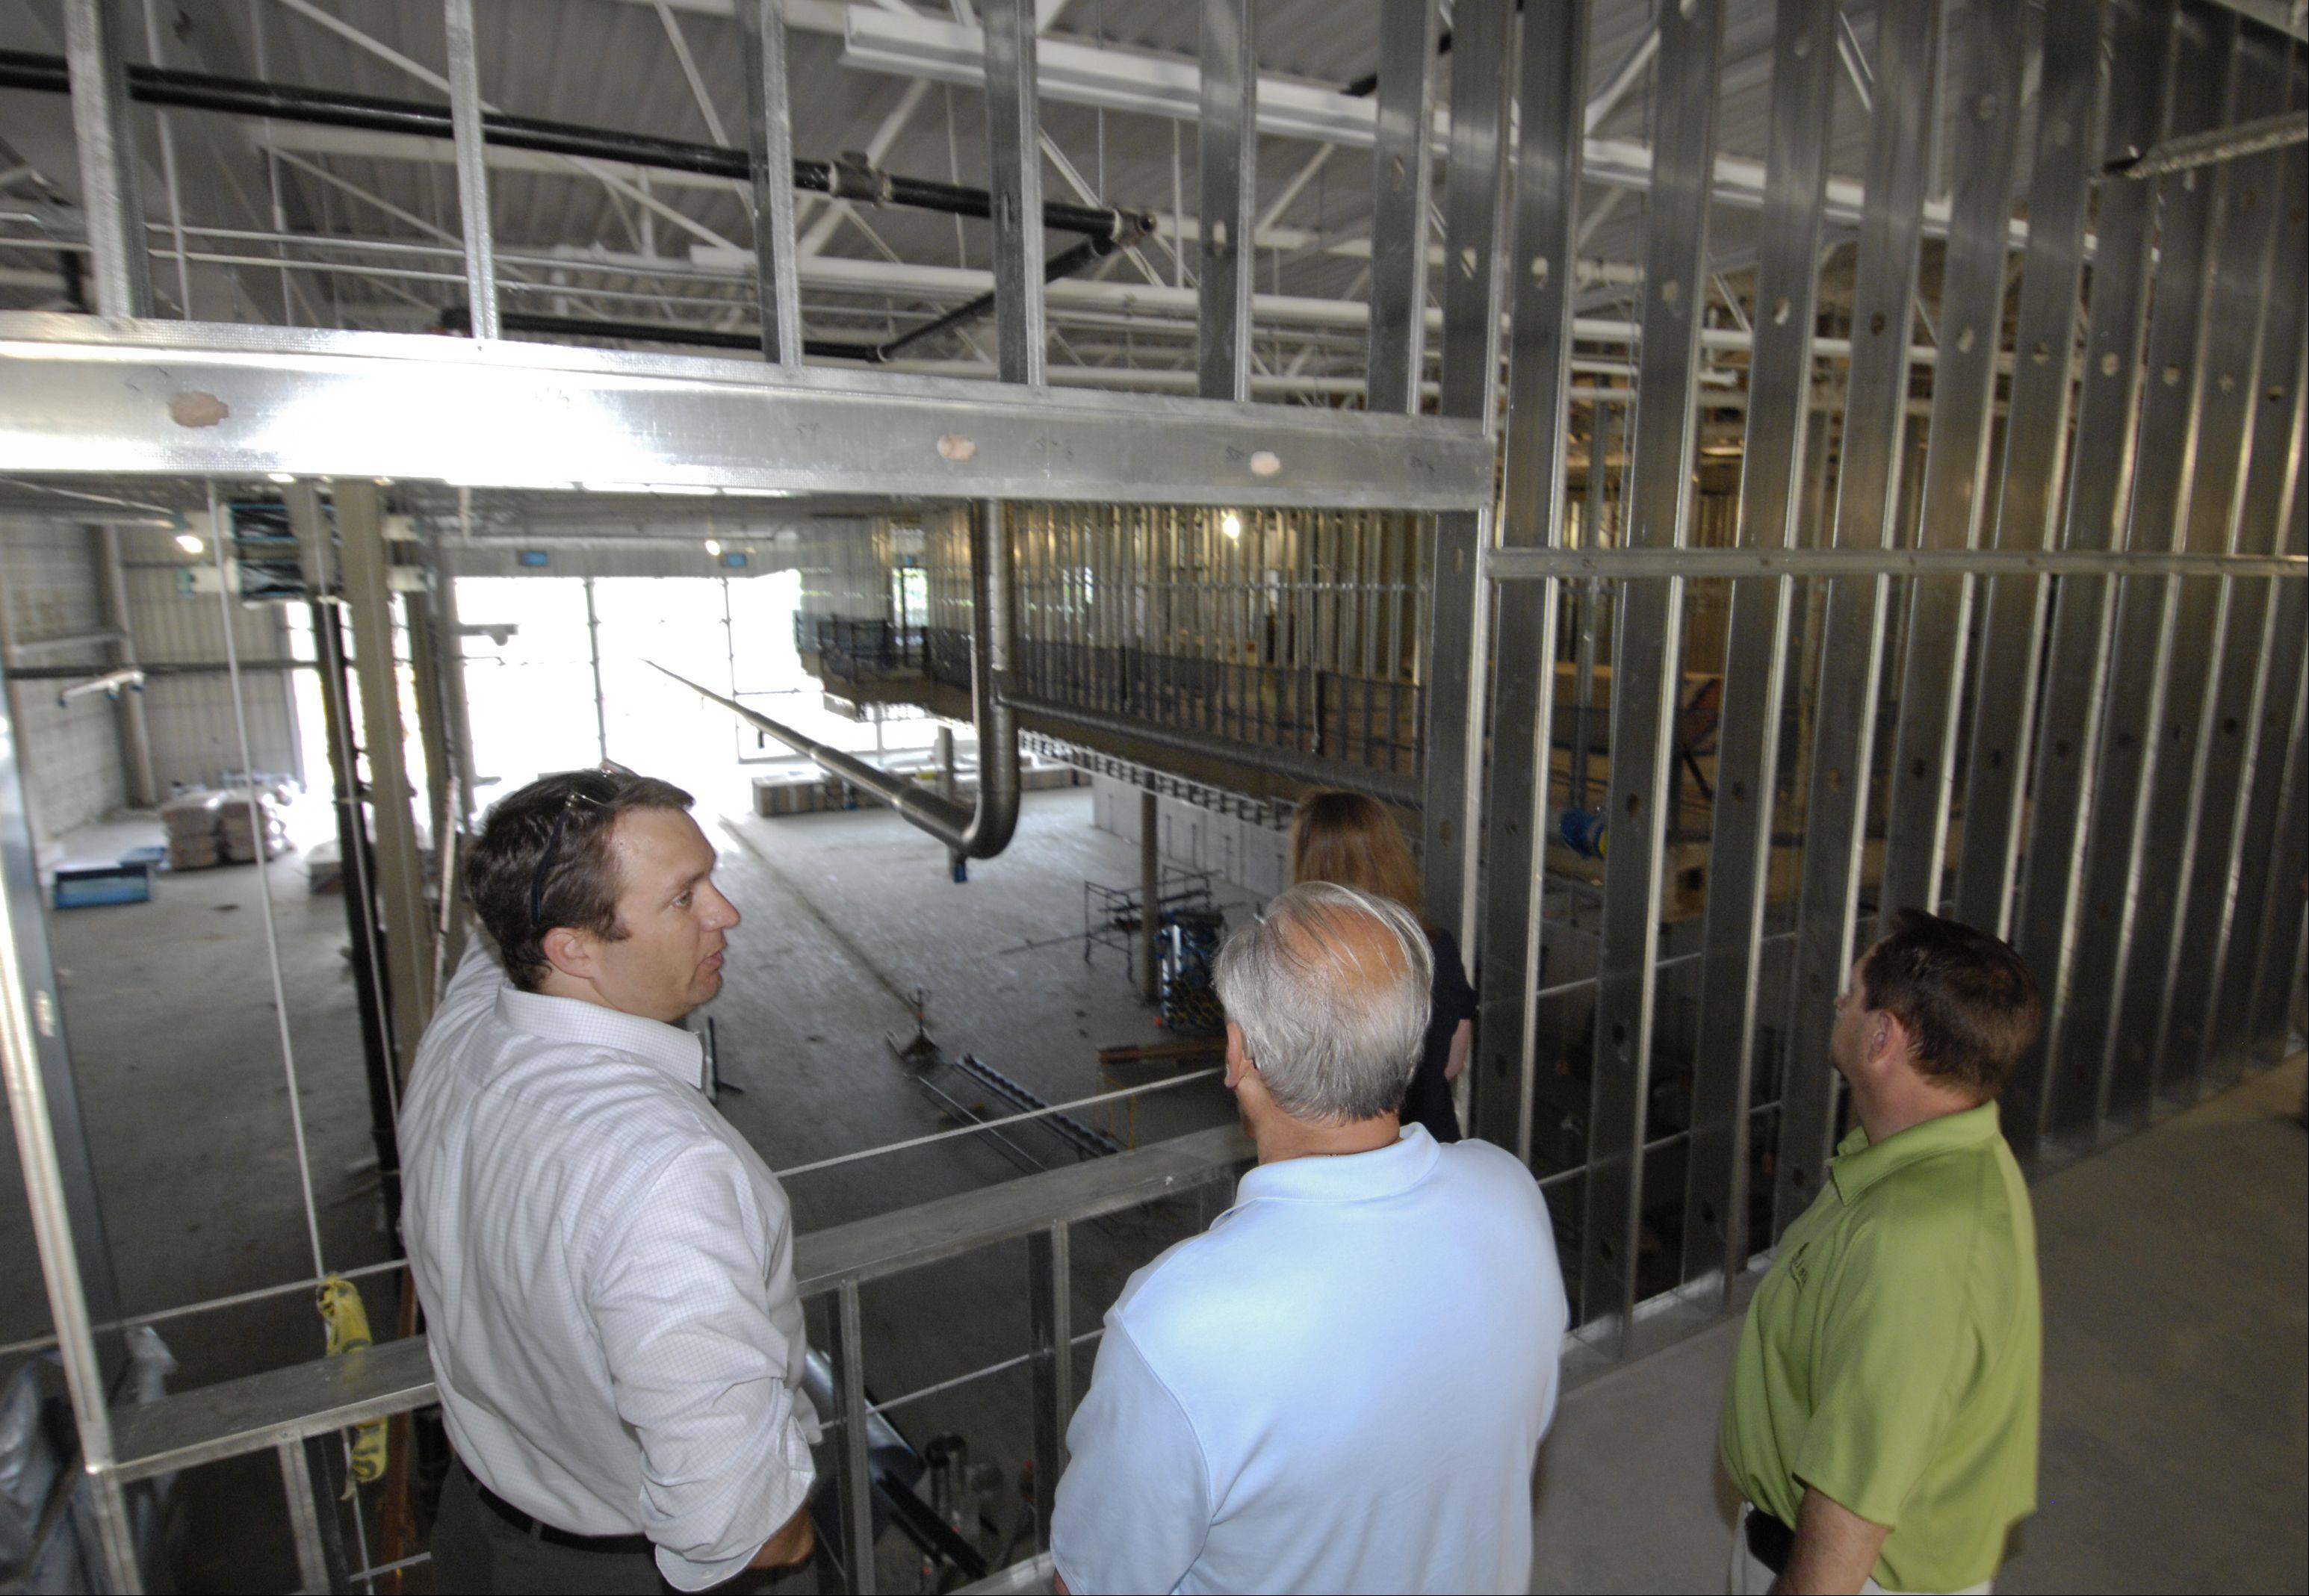 Tim Stoeckel, senior project manager at Jones Lang LaSalle, gives Lisle officials, including Mayor Joe Broda, a tour of the Universal Technical Institute construction site.